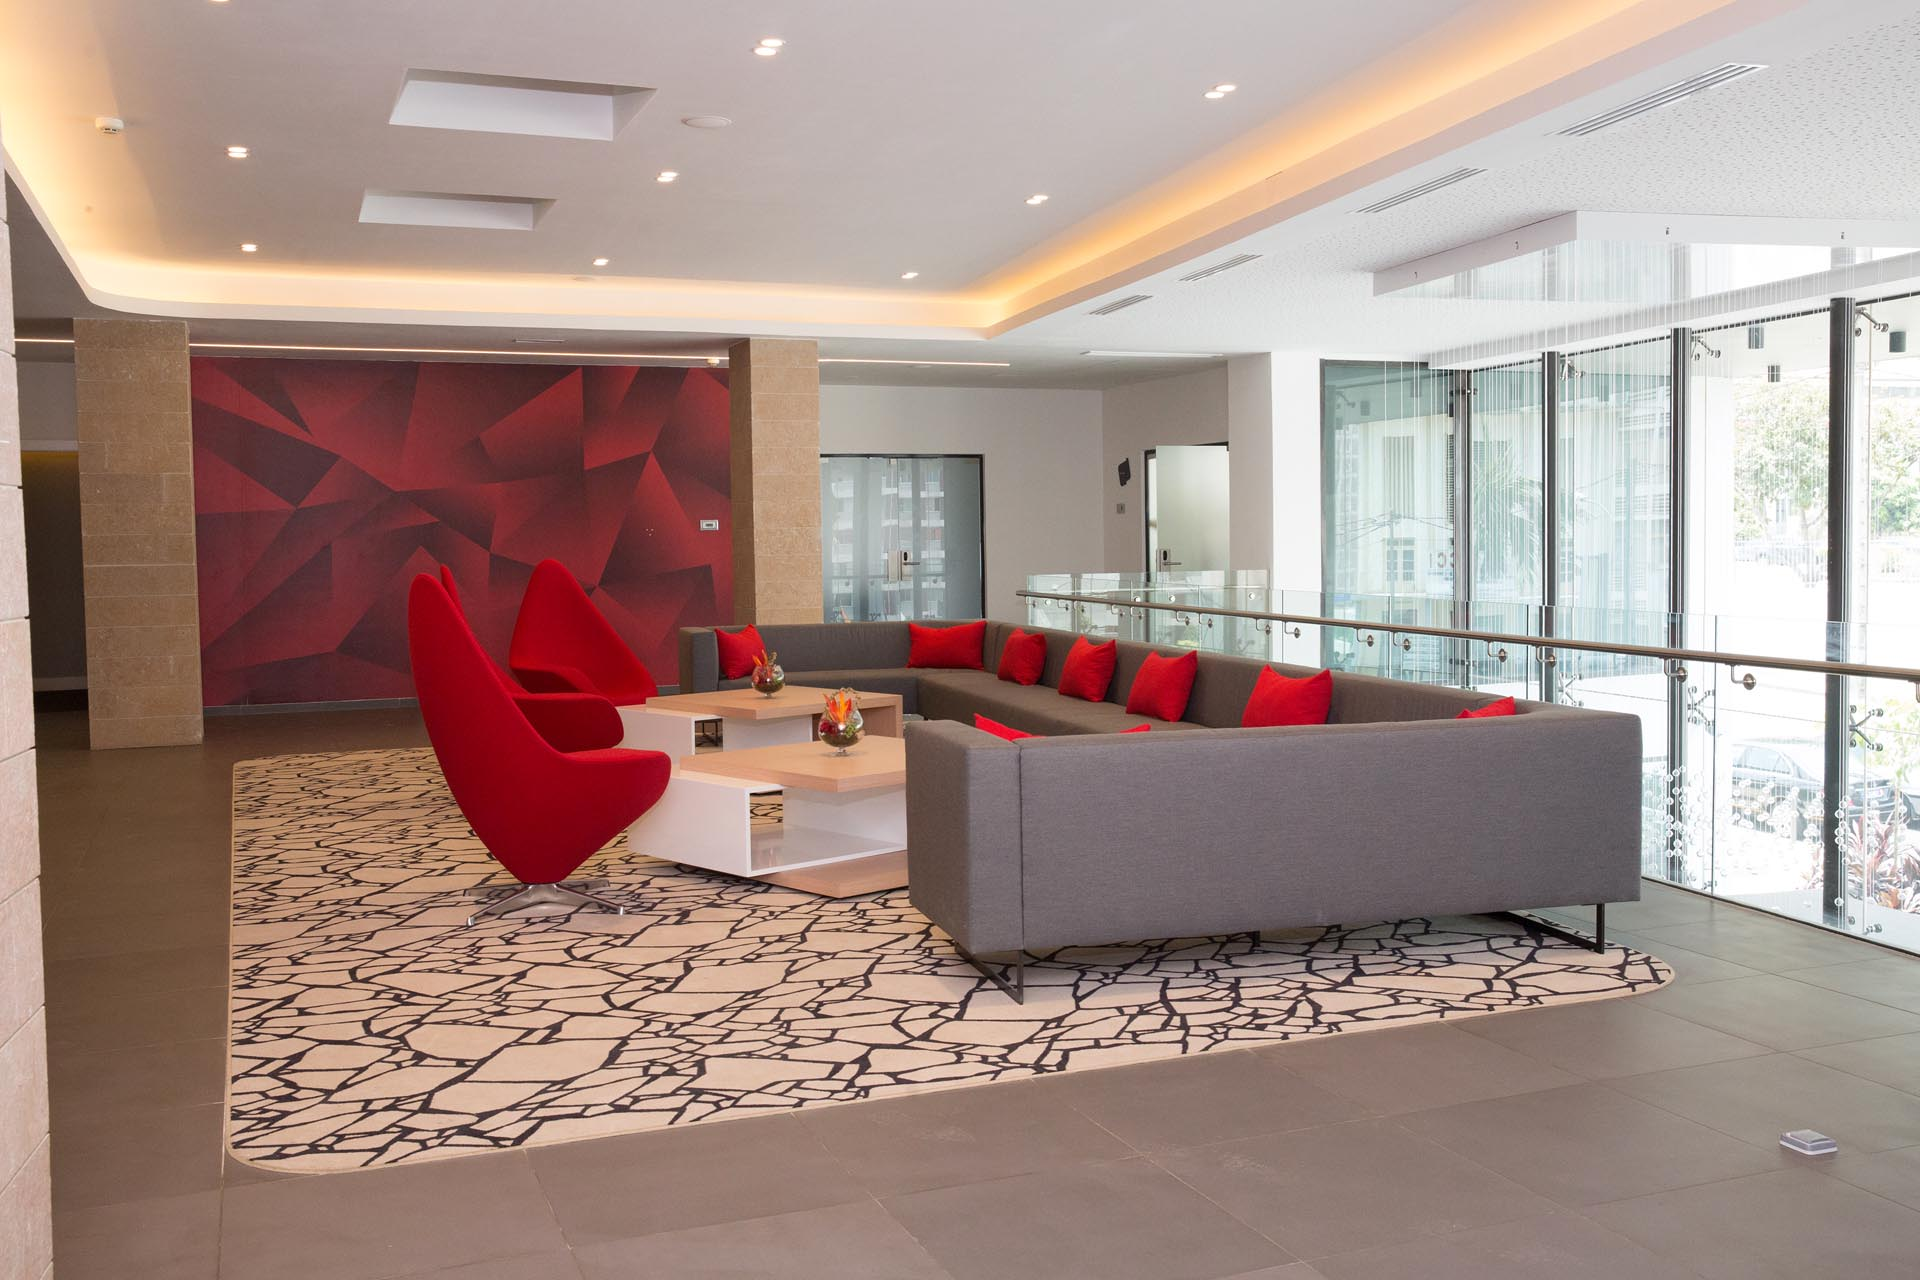 Conferences lobby at Seen Hotel Abidjan Plateau